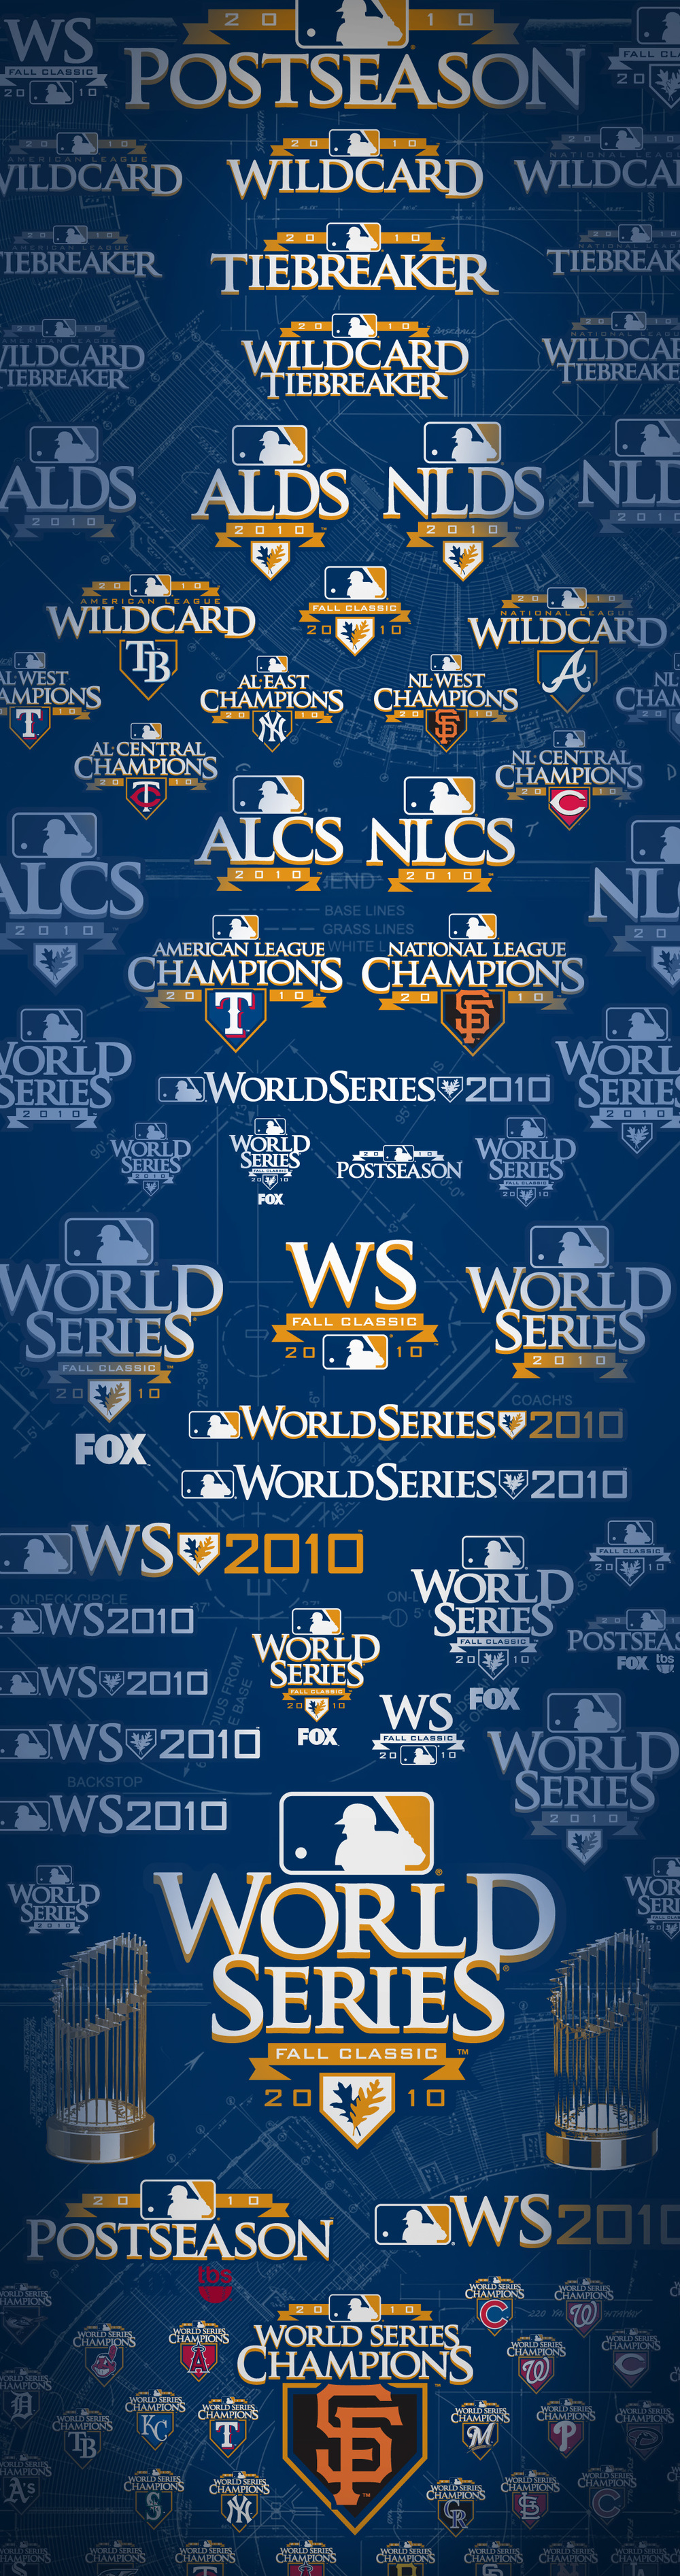 World_Series_2010_Roadmap.jpg